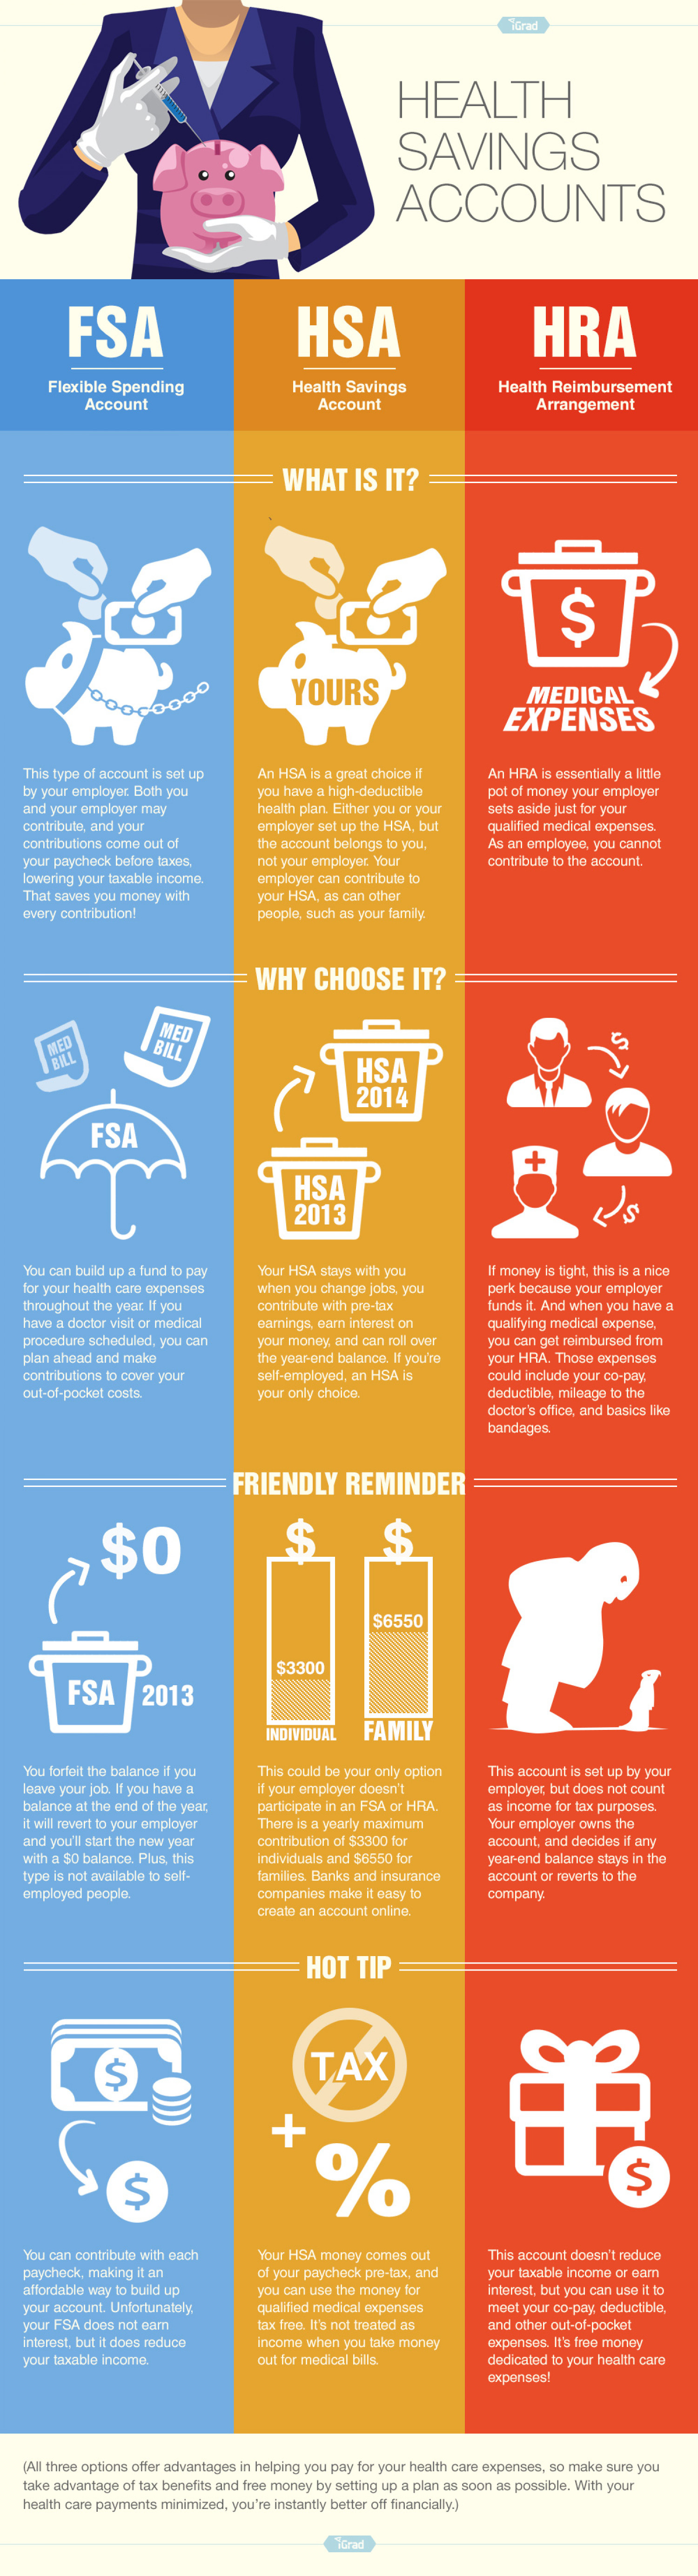 Health Savings Accounts Infographic